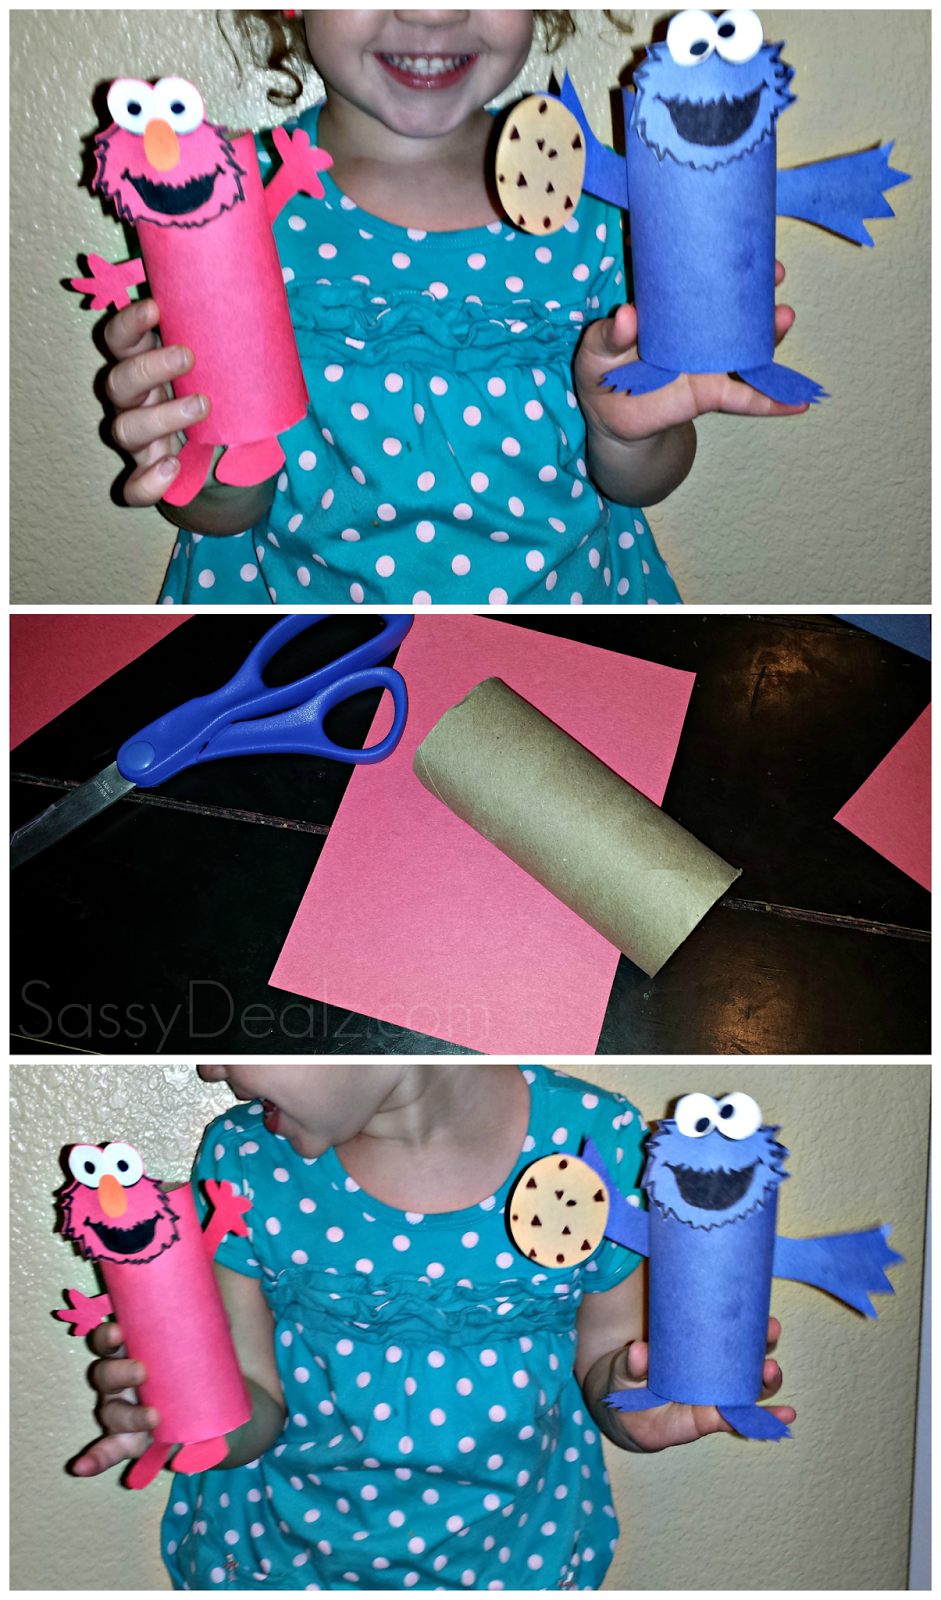 49++ Arts and crafts with toilet paper rolls ideas